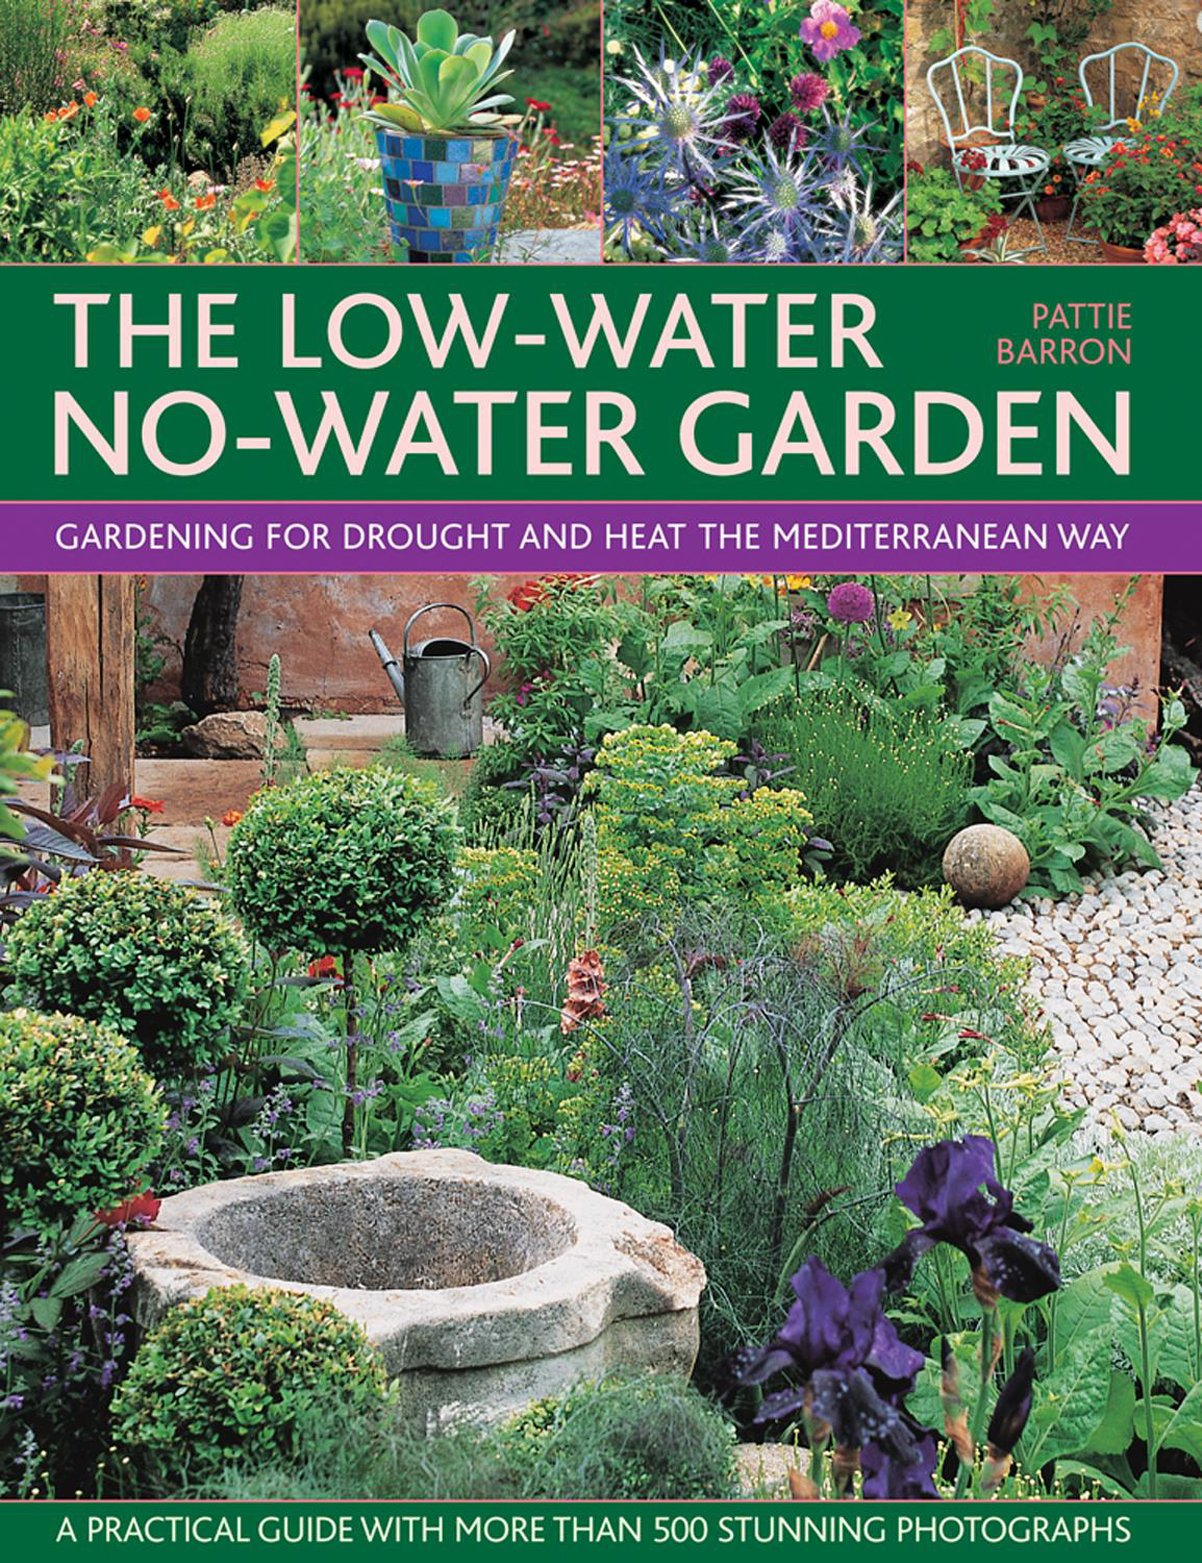 Charmant The Low Water No Water Garden: Gardening For Drought And Heat The  Mediterranean Way: Pattie Barron, Simon McBridge, Richard Mabey:  9781780194219: ...